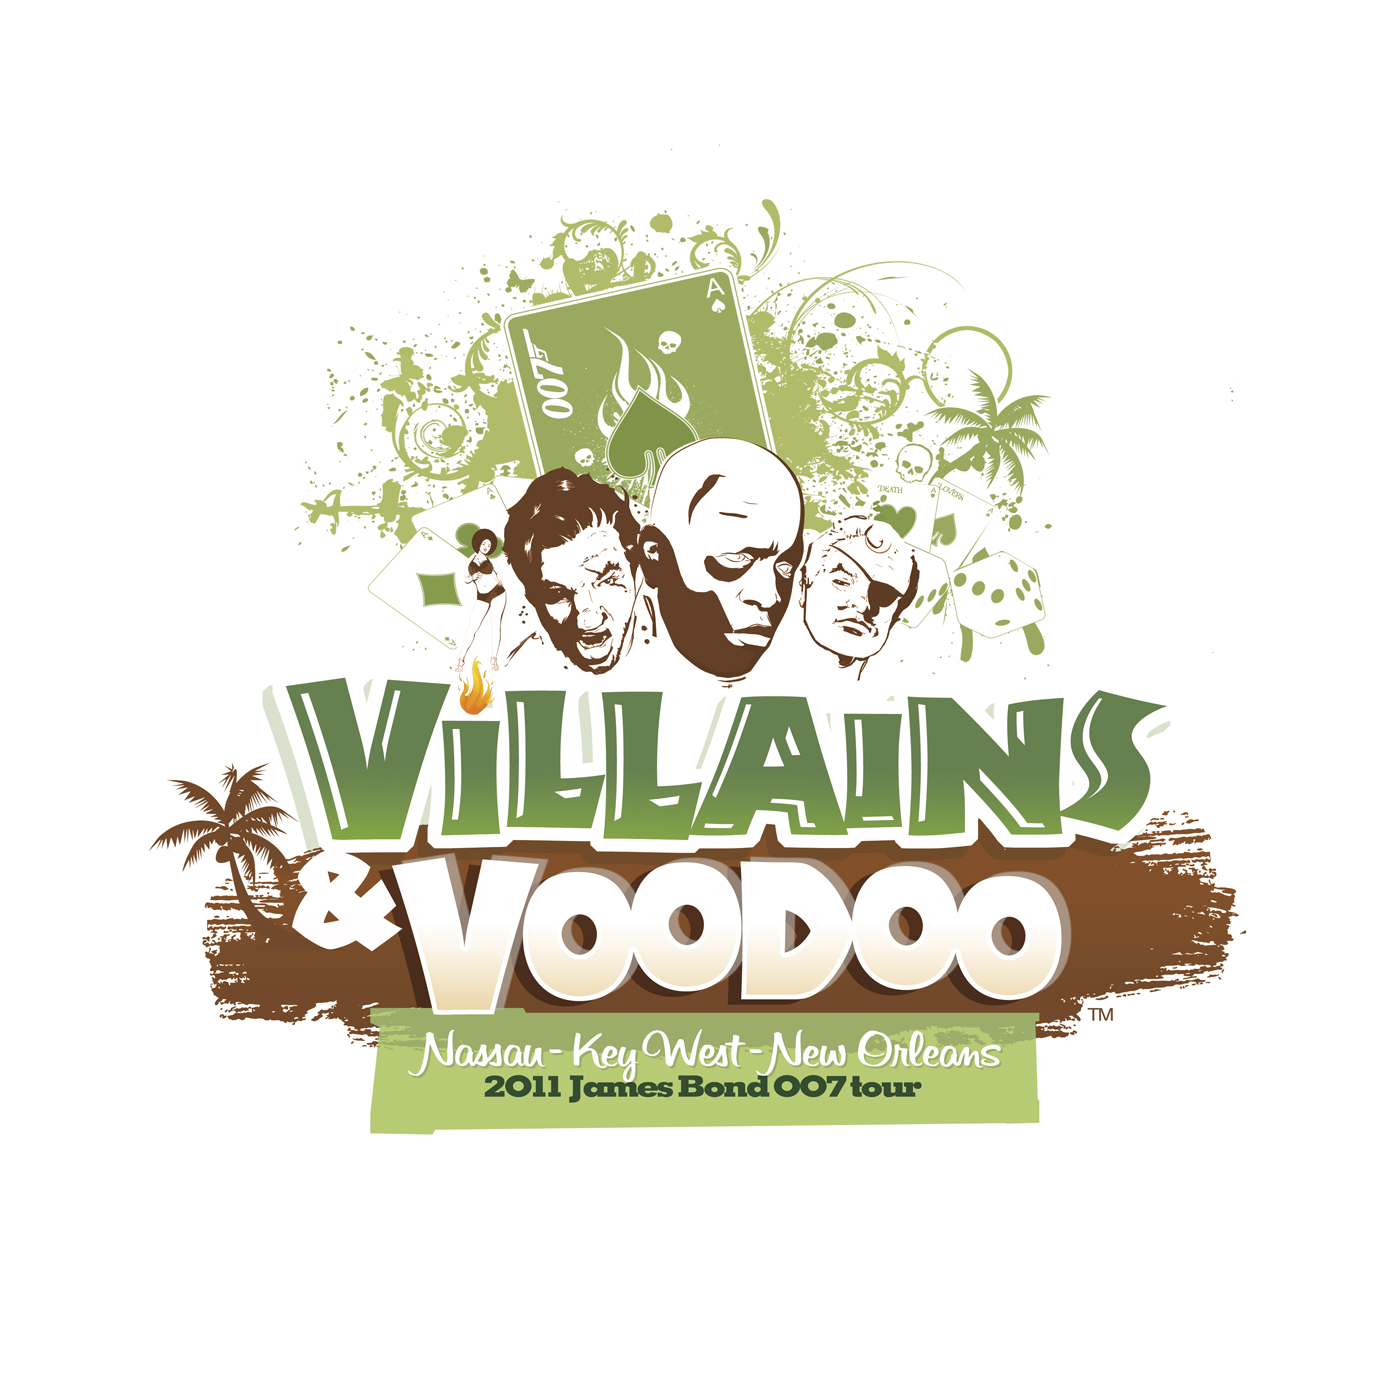 villains and voodo full color.jpg